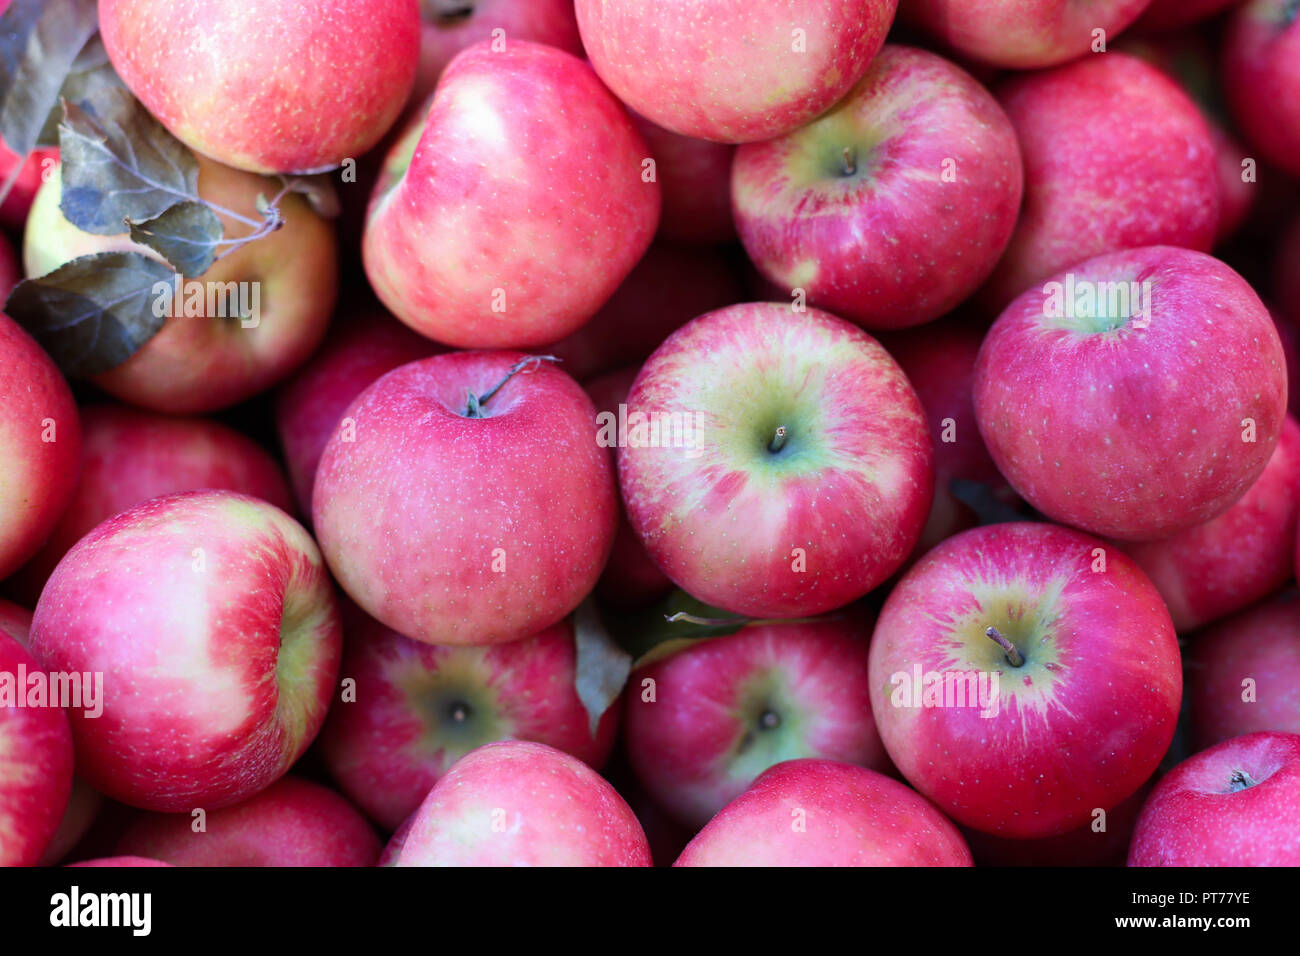 Honey crisp red apples fruit background healthy food fresh market ff from up - Stock Image